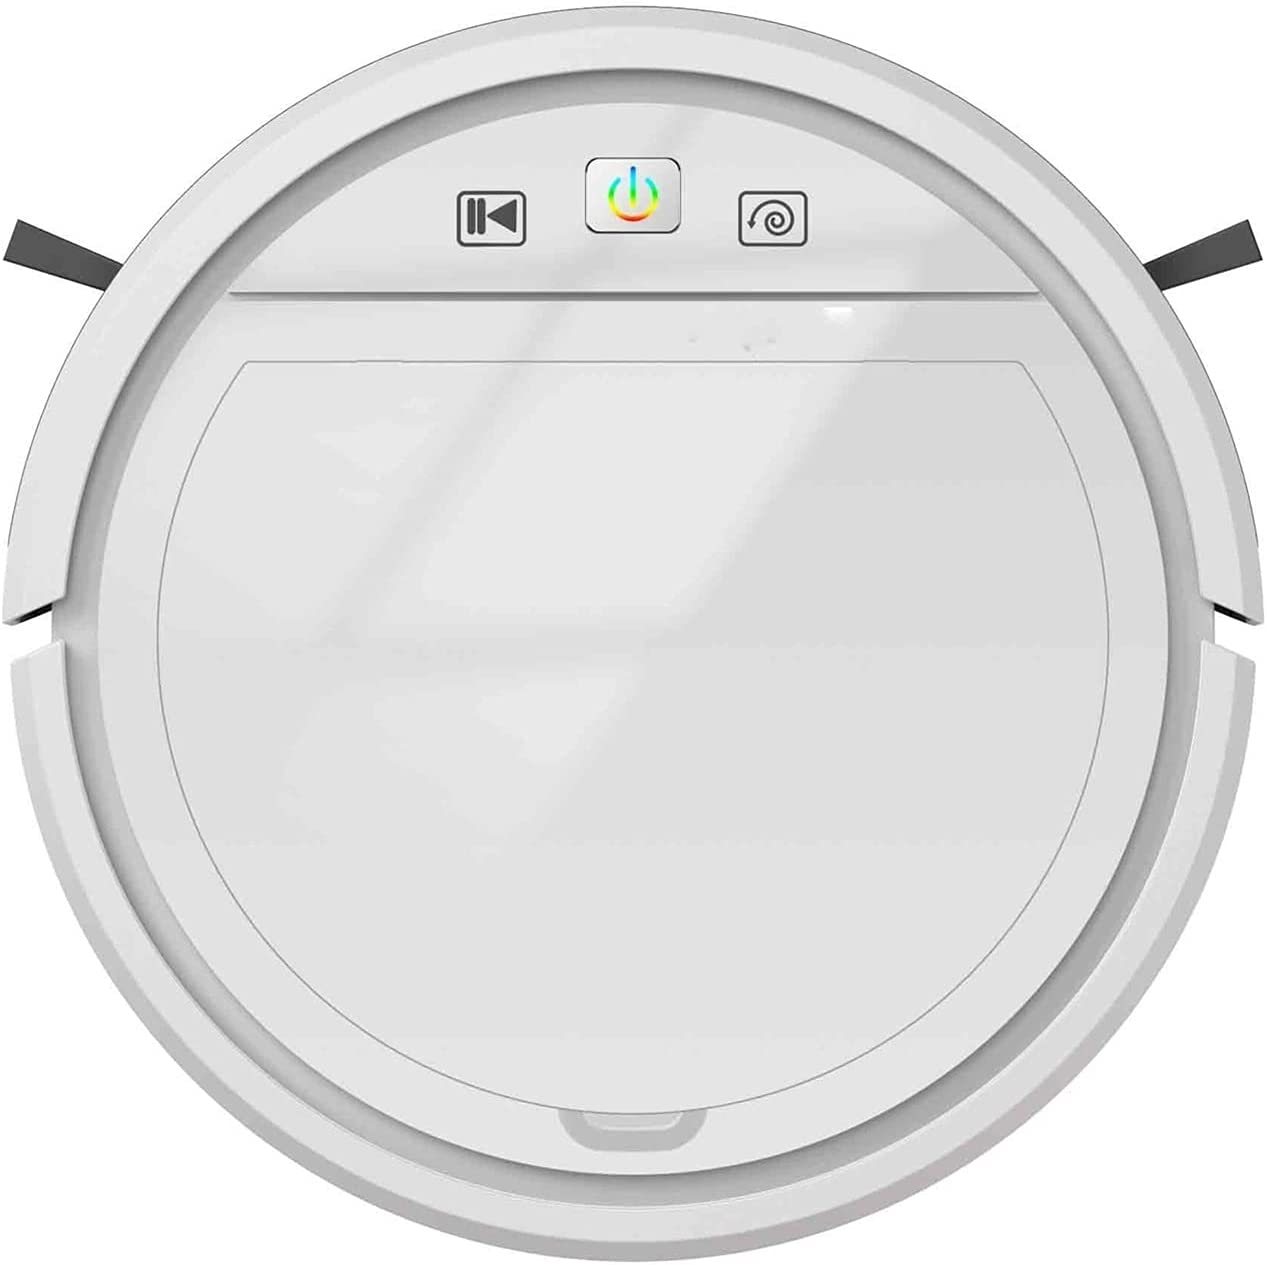 GDYJP 3-in-1 Robot Vacuum and Robotic Cl Quiet Max Bombing free shipping 53% OFF Mop Slim